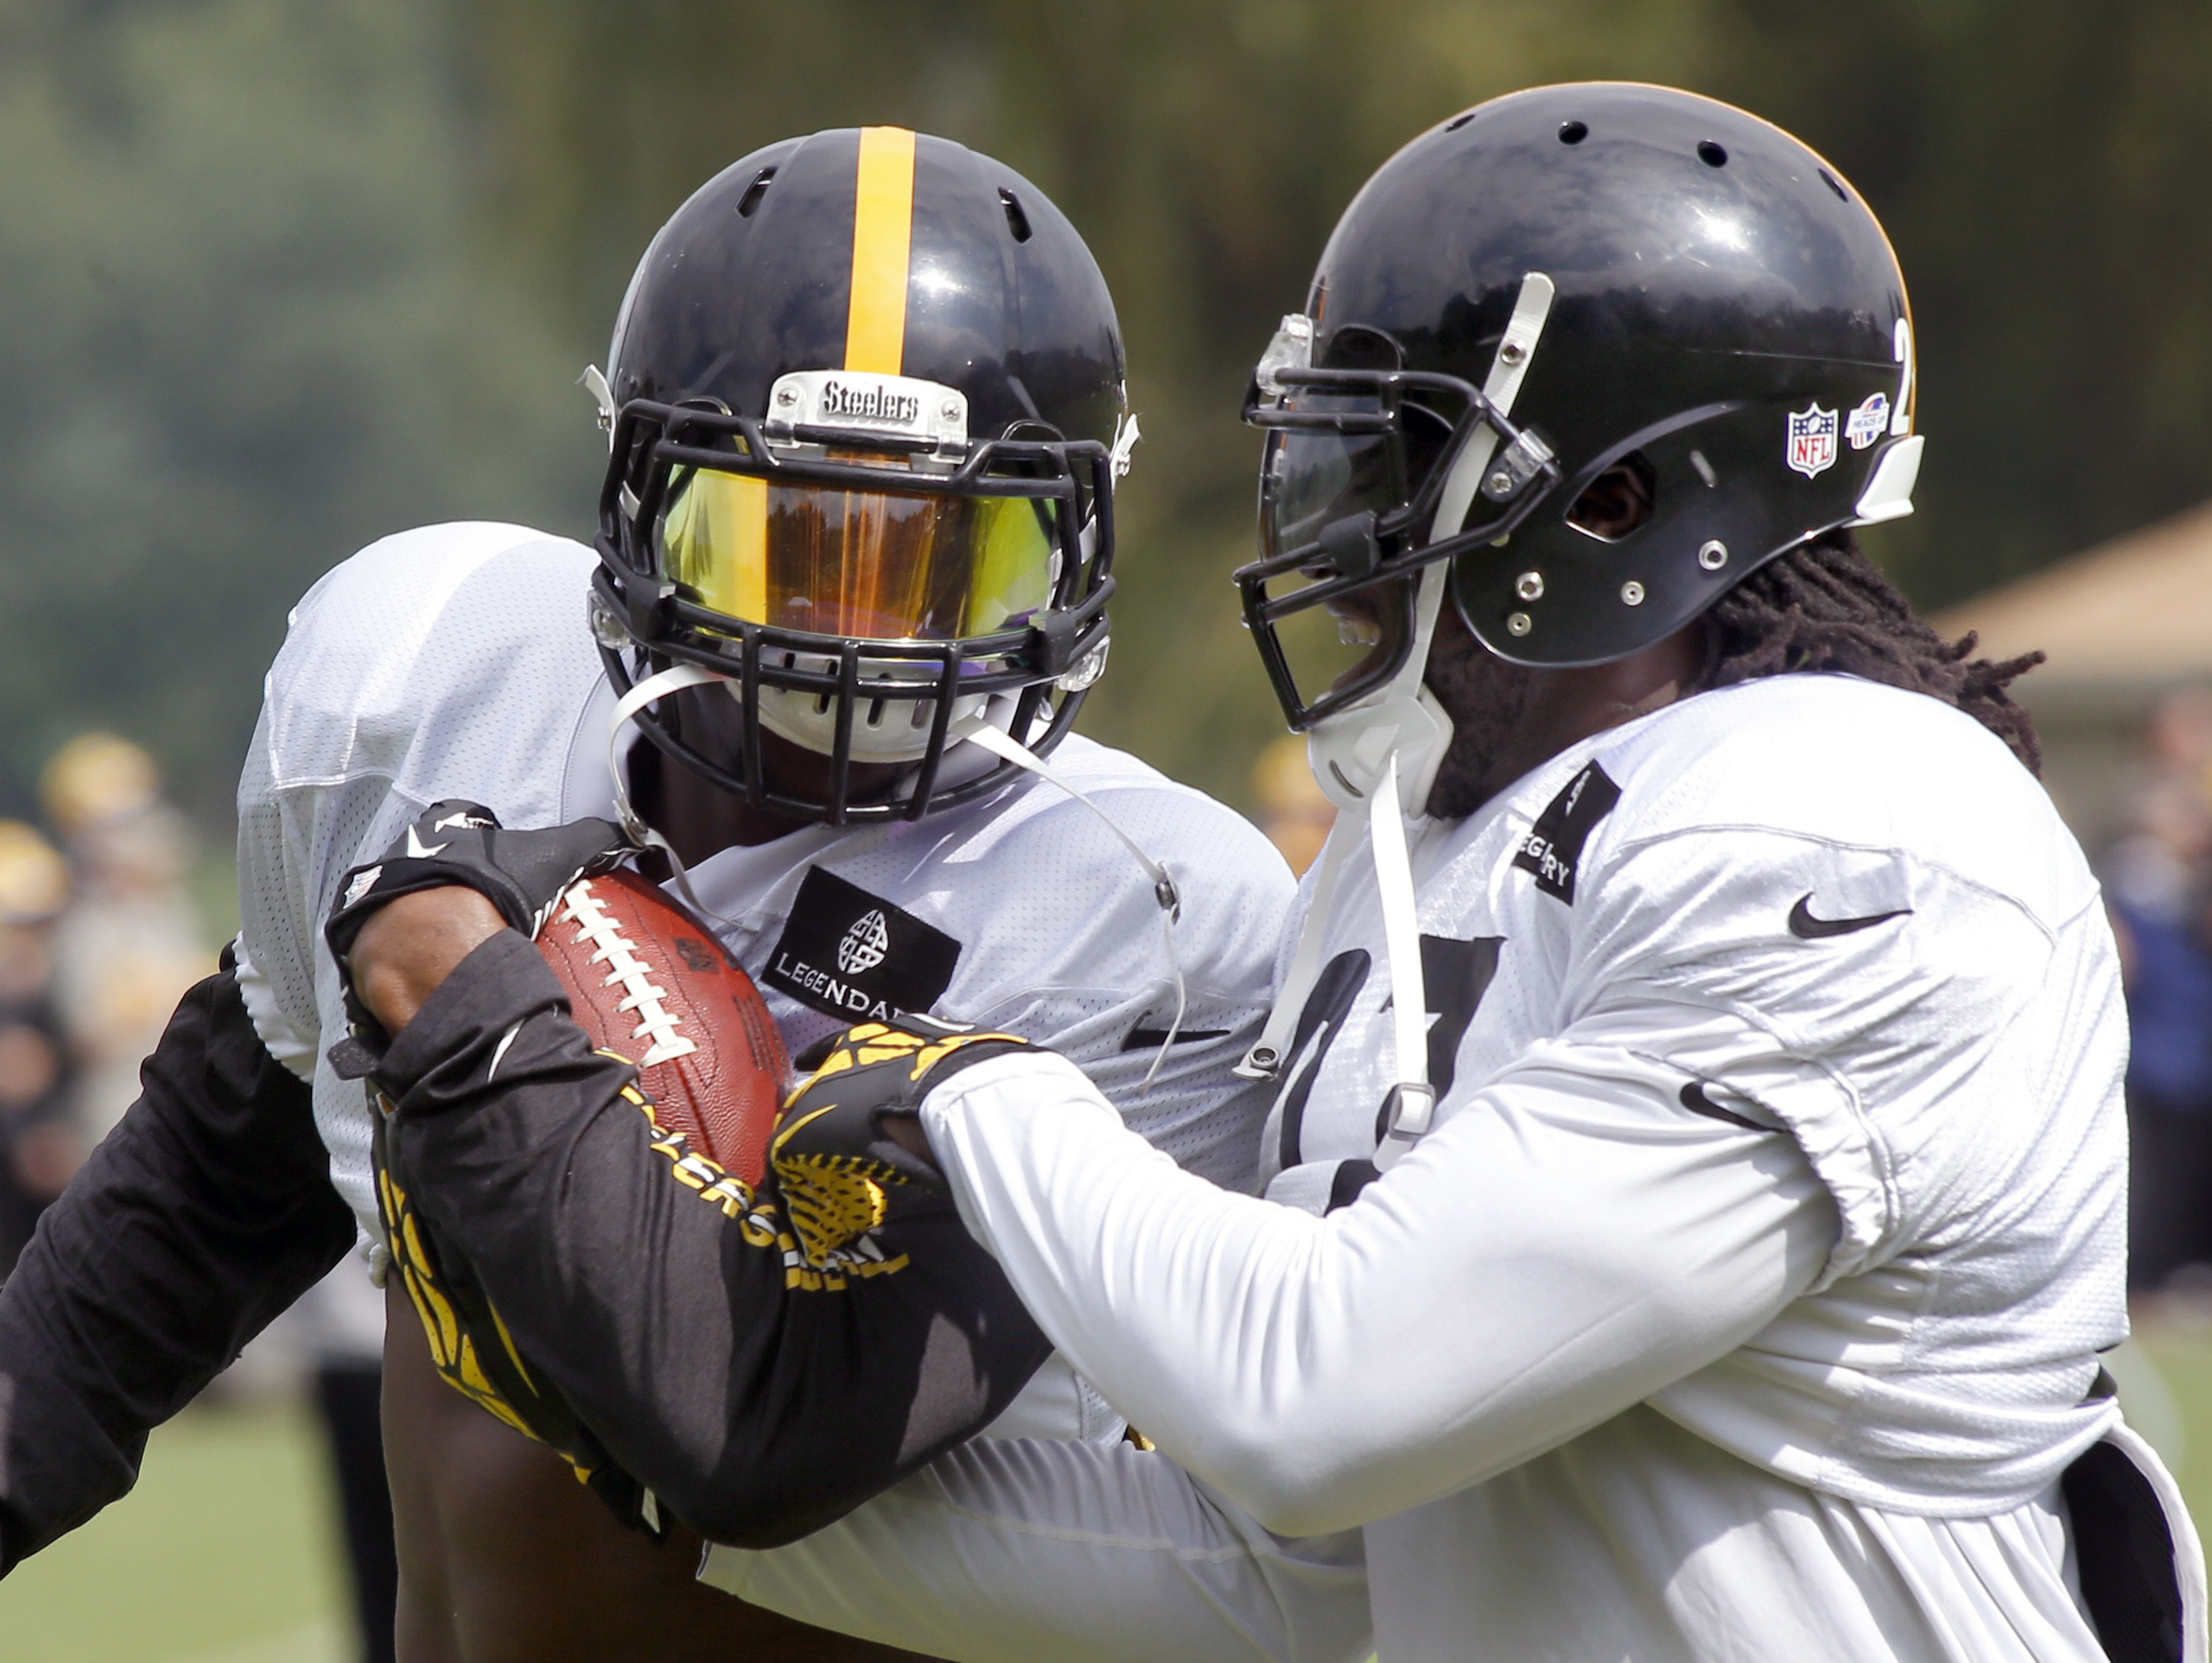 FILE - In this Aug. 13, 2014, file photo, Pittsburgh Steelers running back LeGarrette Blount, right, tries to strip the ball from fellow Steelers running back Le'Veon Bell in a drill during NFL football training camp in Latrobe, Pa. Blount effectively wal